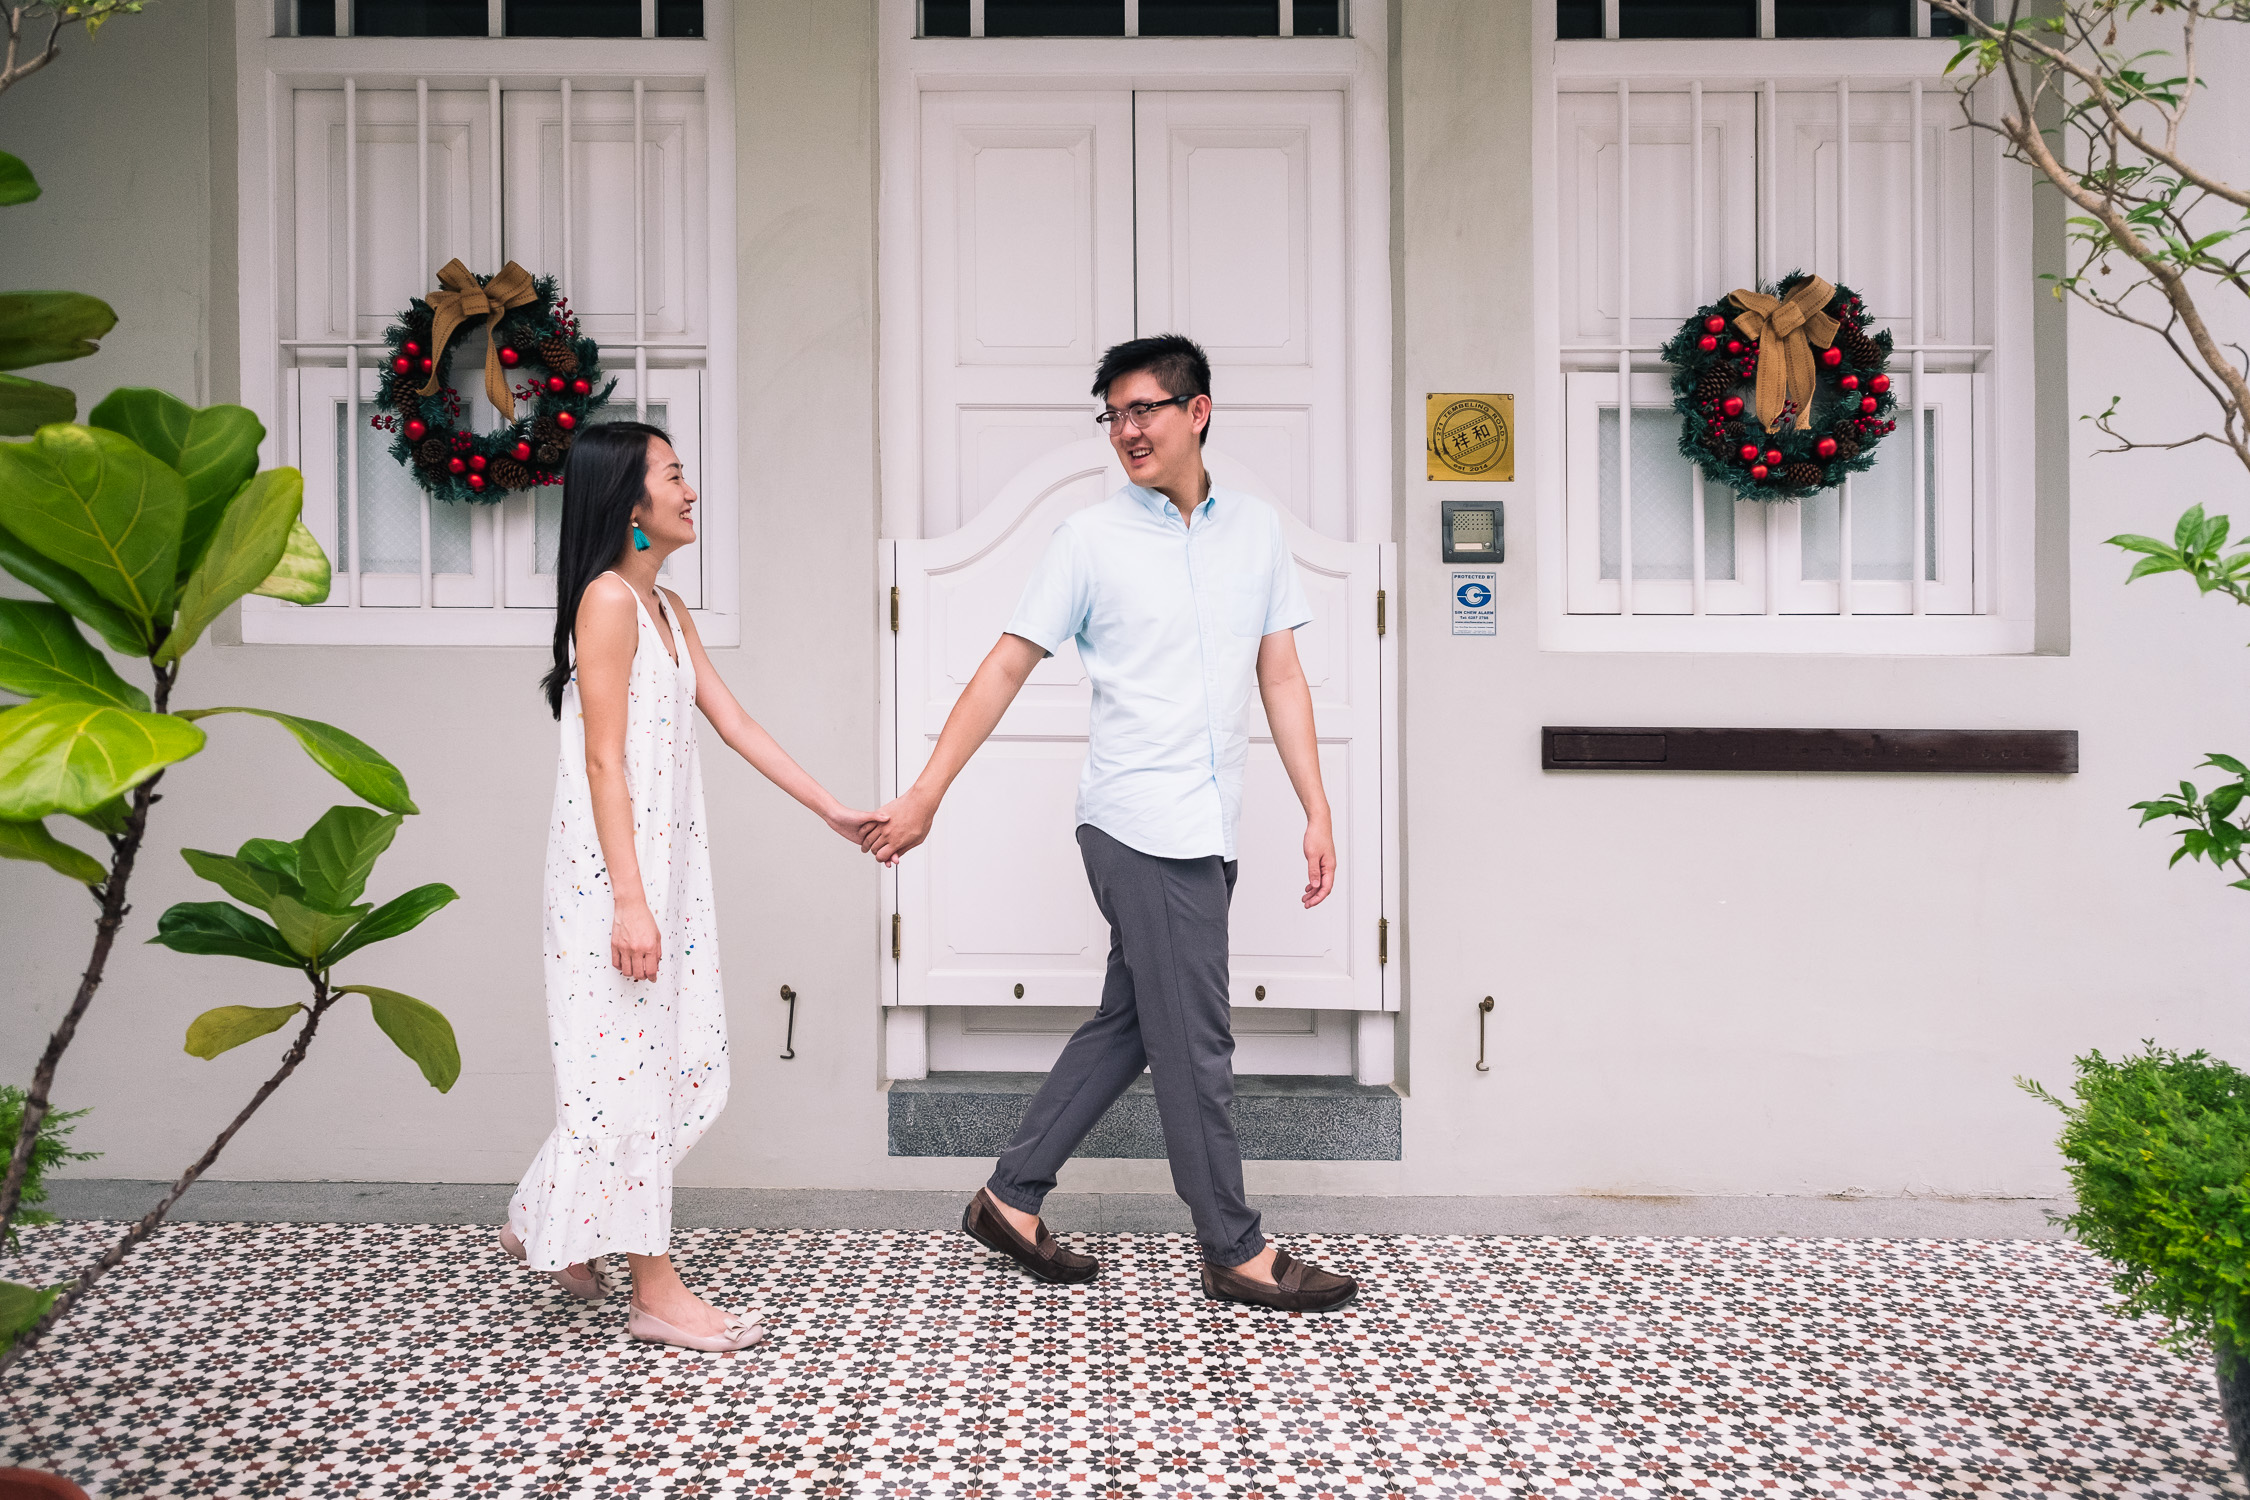 Tall Asian guy, girl in polka dot dress, Christmas wreaths, traditional houses in Singapore prewedding shoot